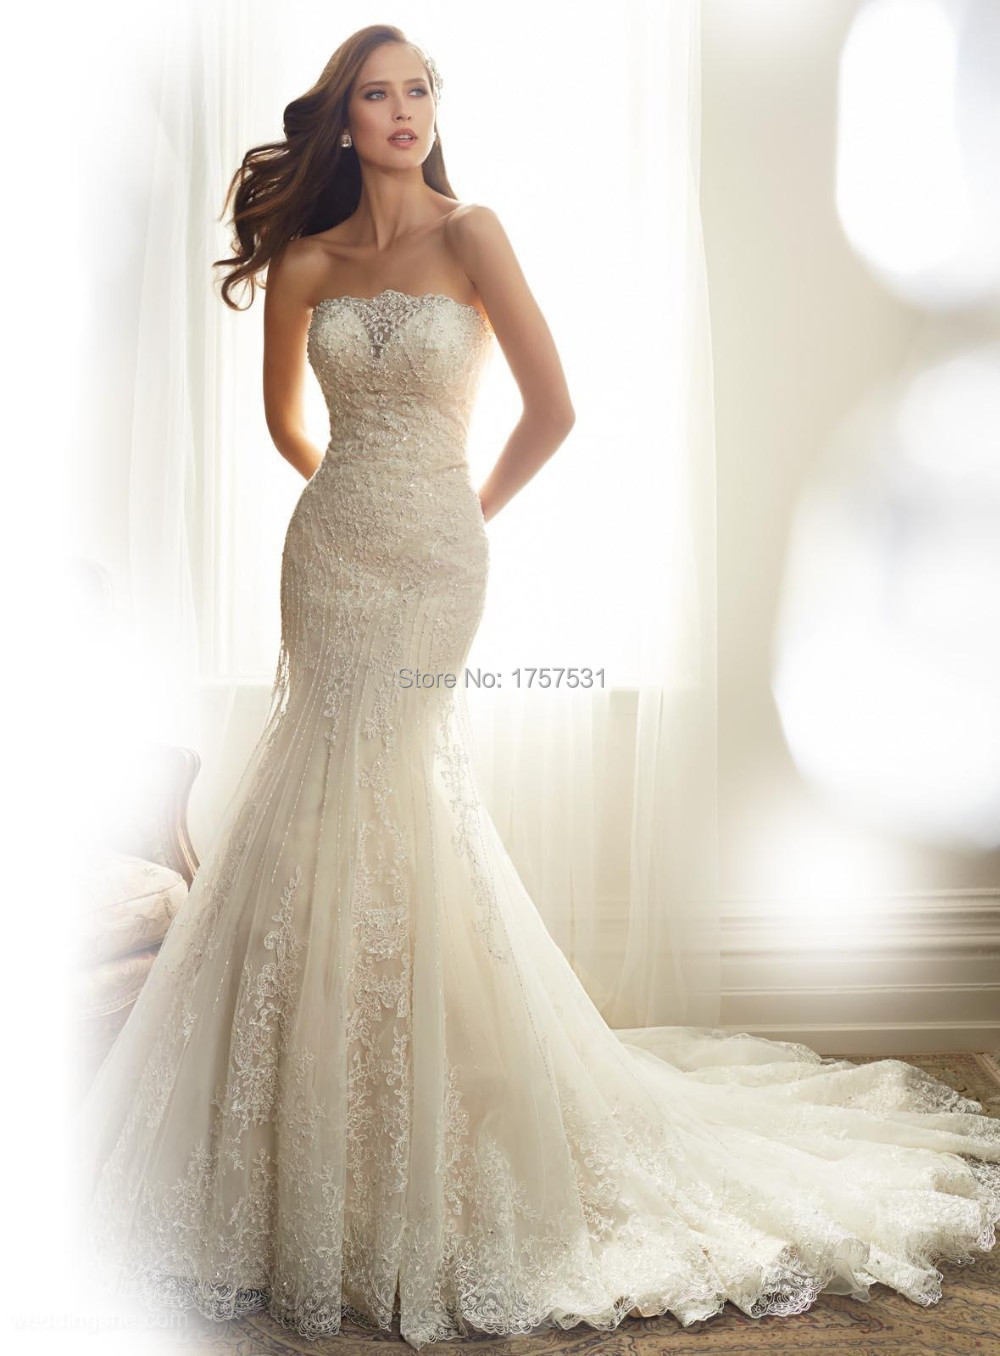 Charming 2015 white ivory elegant mermaid wedding dress for Lace white wedding dress